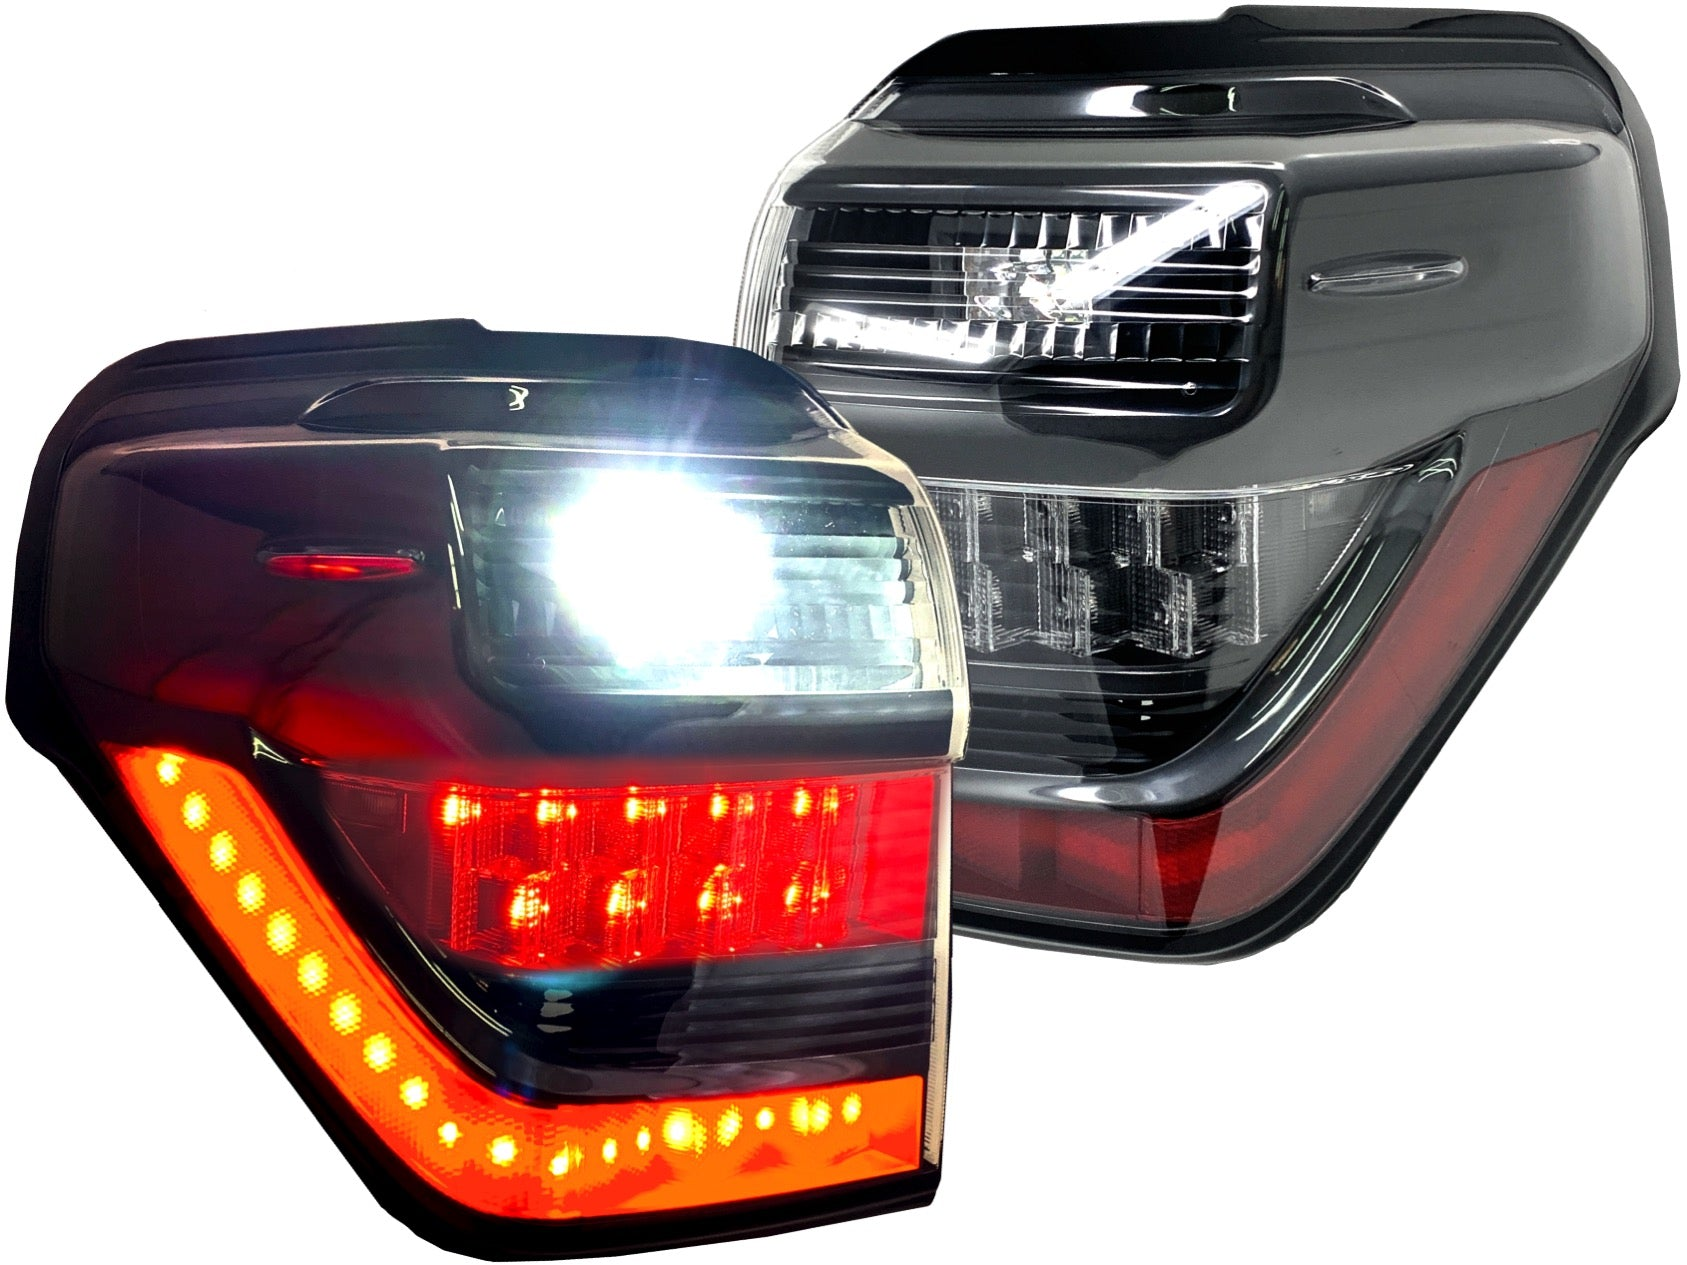 OLED BLACK LED TAIL LIGHTS - TOYOTA 4RUNNER 5th GEN 2010-2021 - 4x4 Runners